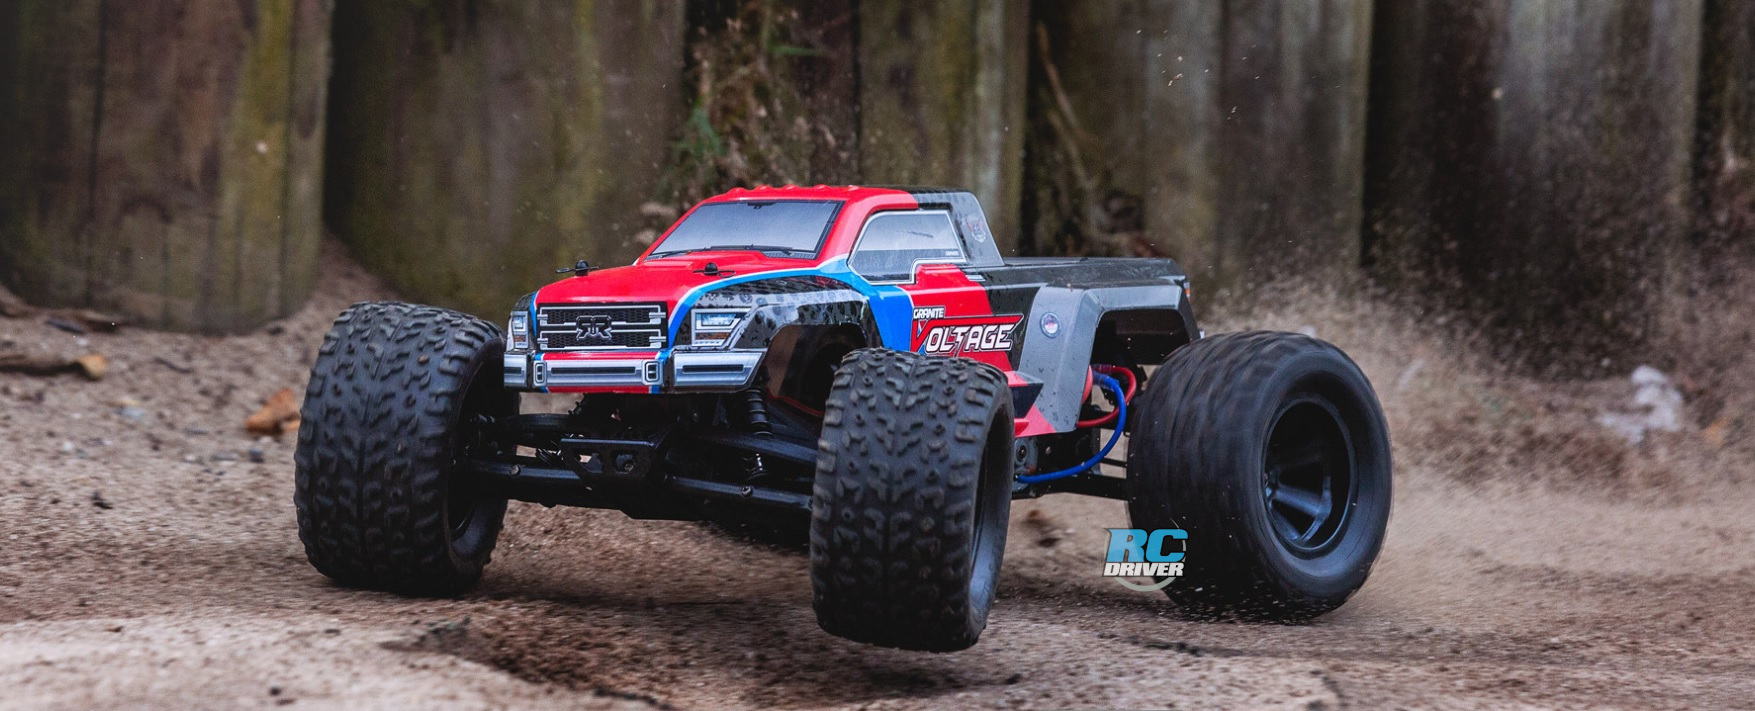 Arrma Granite Voltage 2WD Brushed Mega Monster Truck